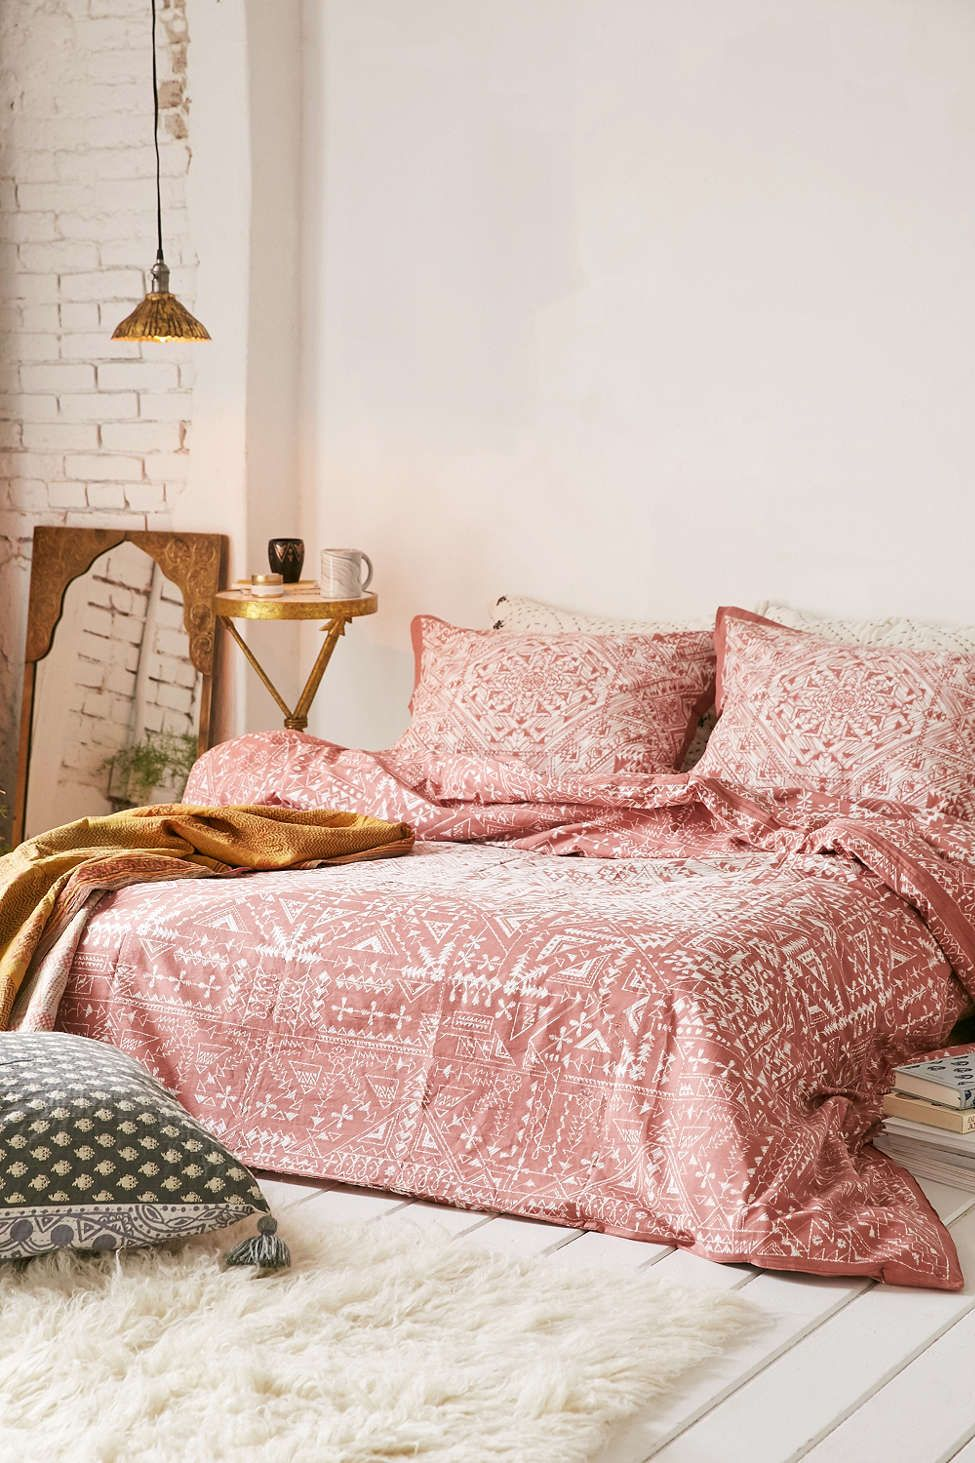 Magical Thinking Izmir Maze Duvet Cover Urban Outfitters